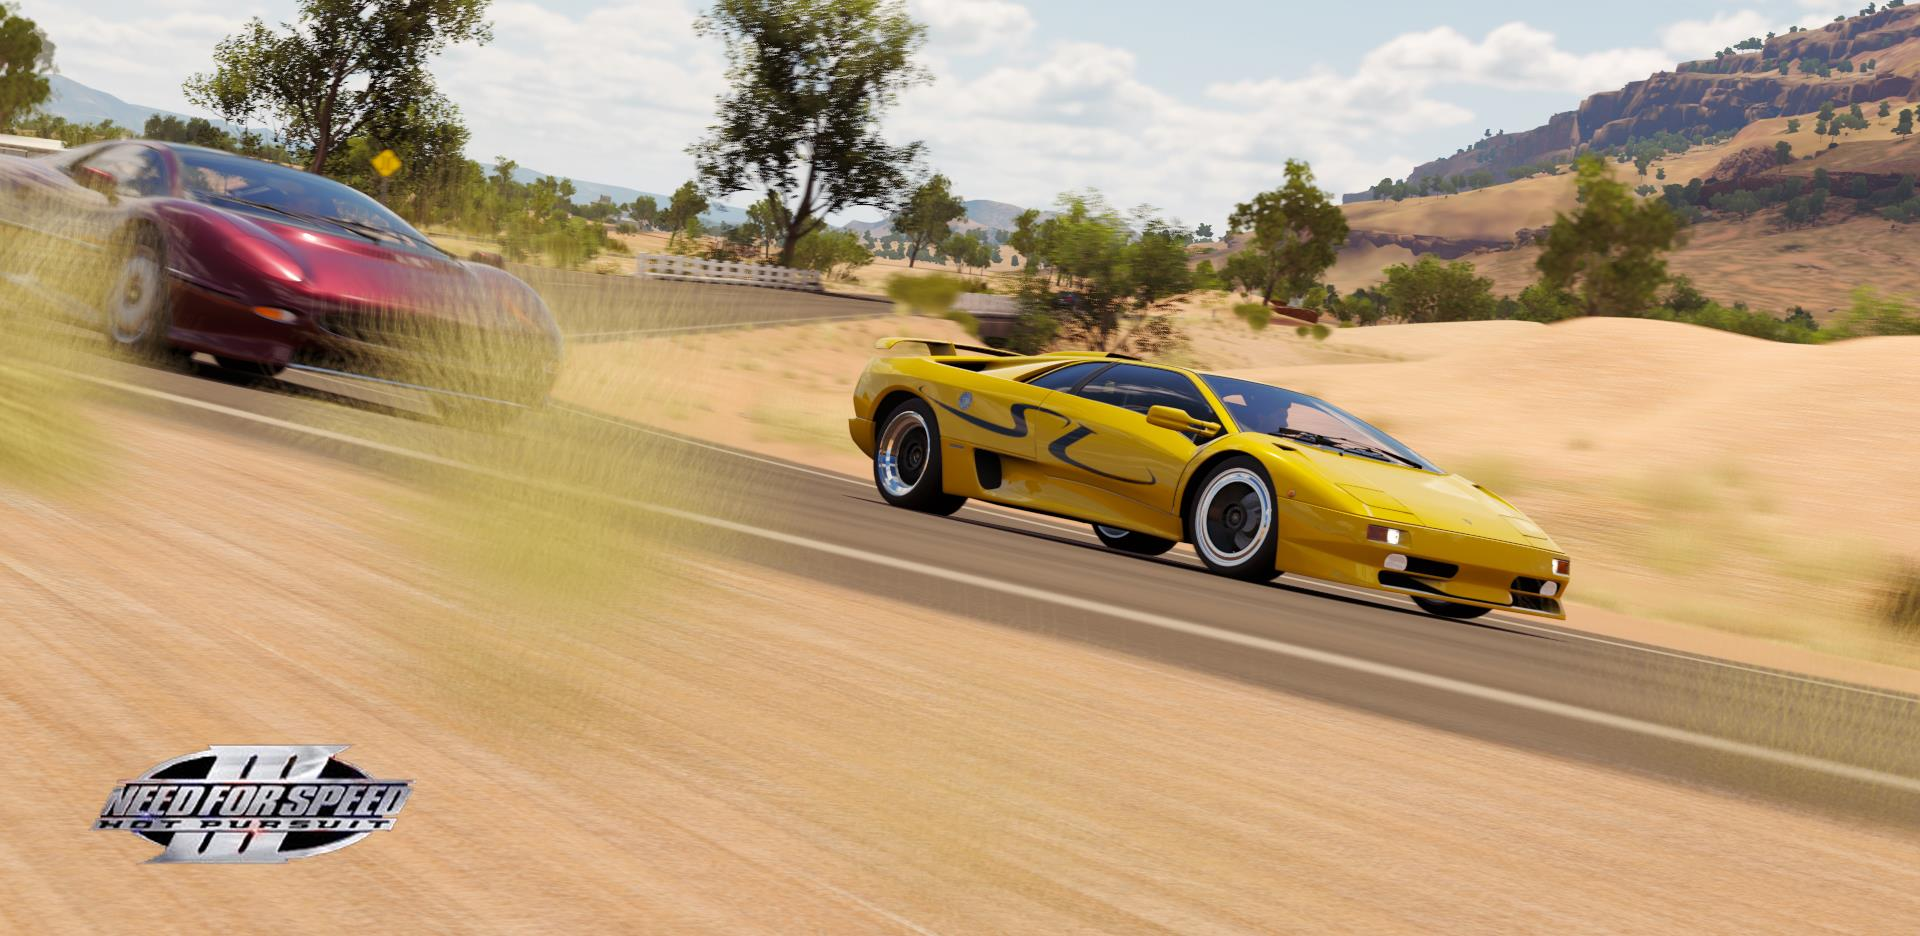 fh3_tribute_nfs_hot_persuit2_1